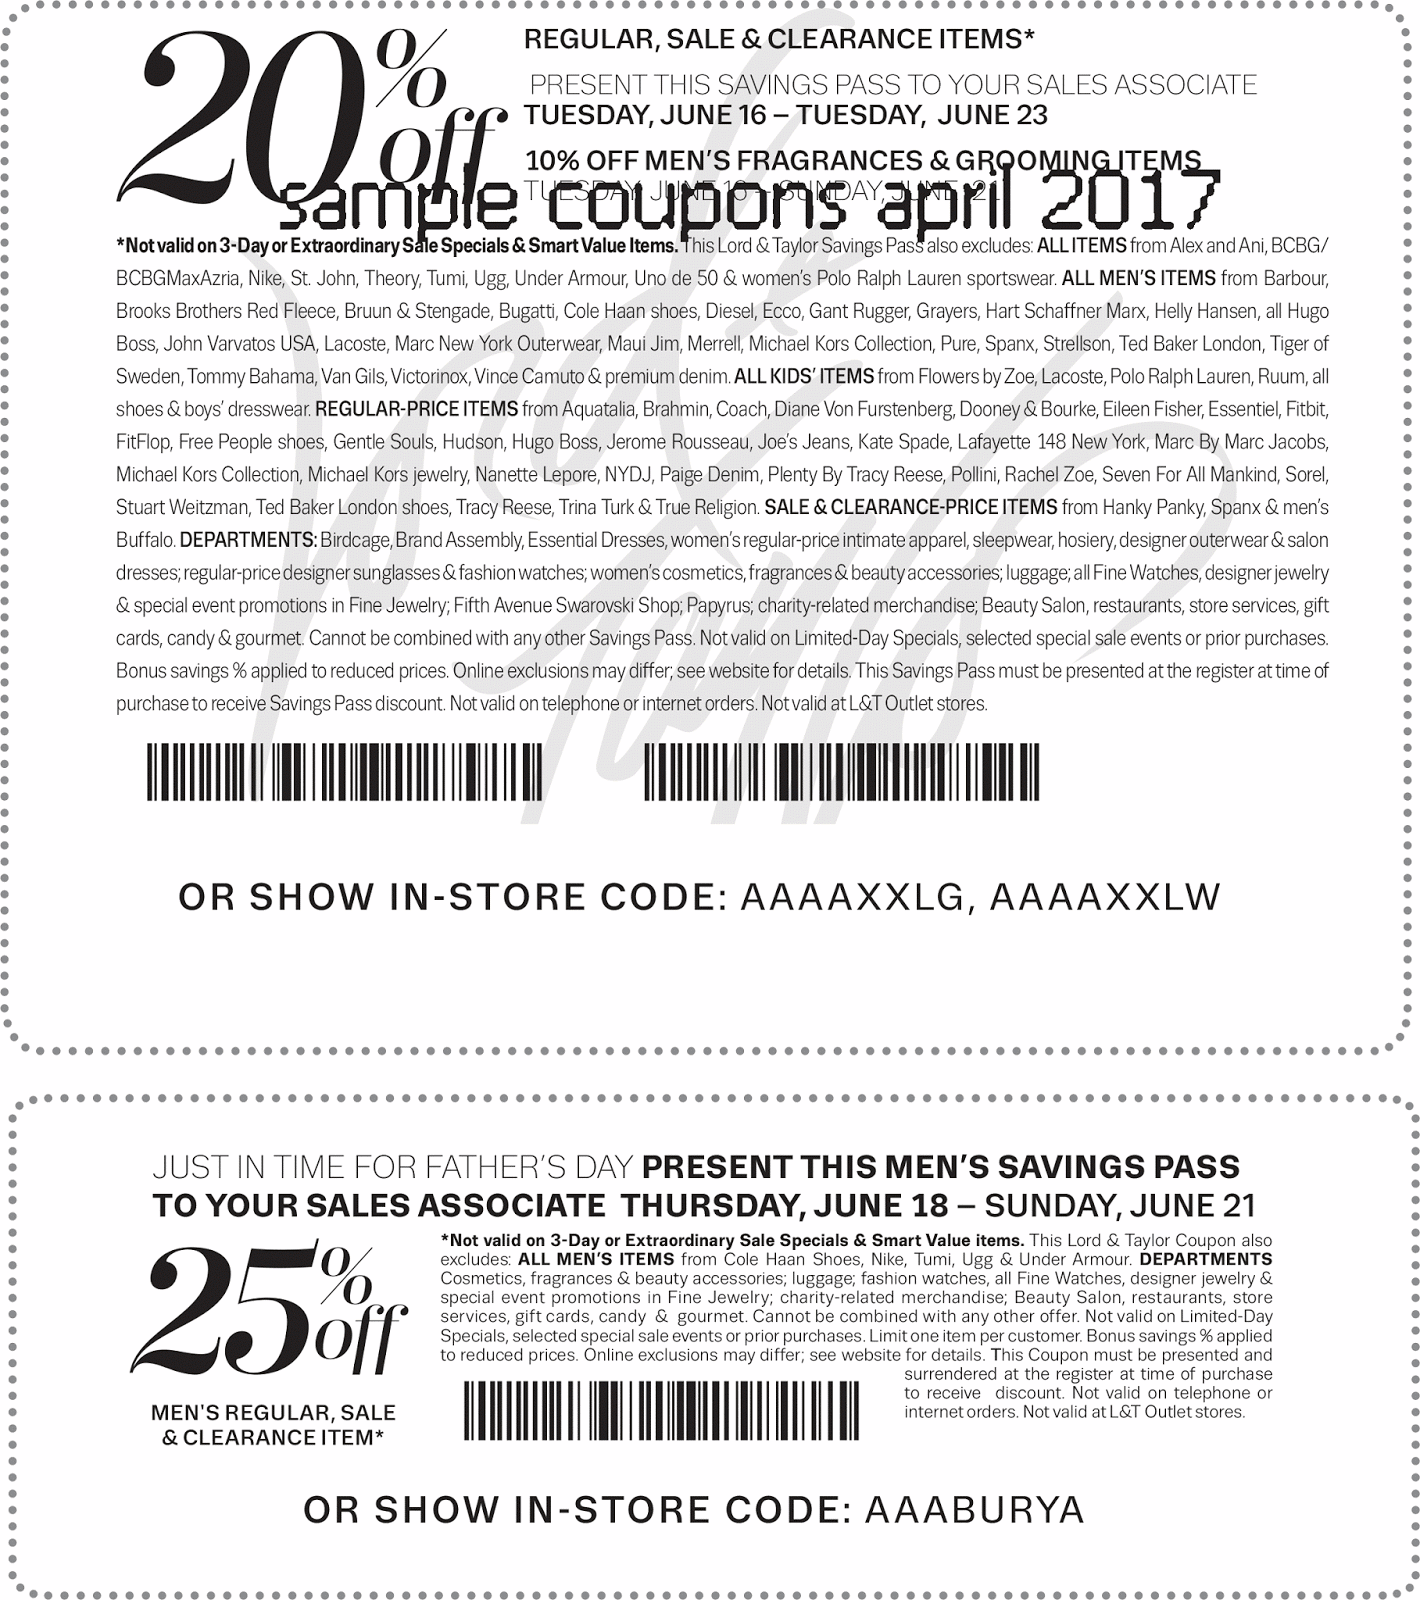 Lord & taylor coupons printable